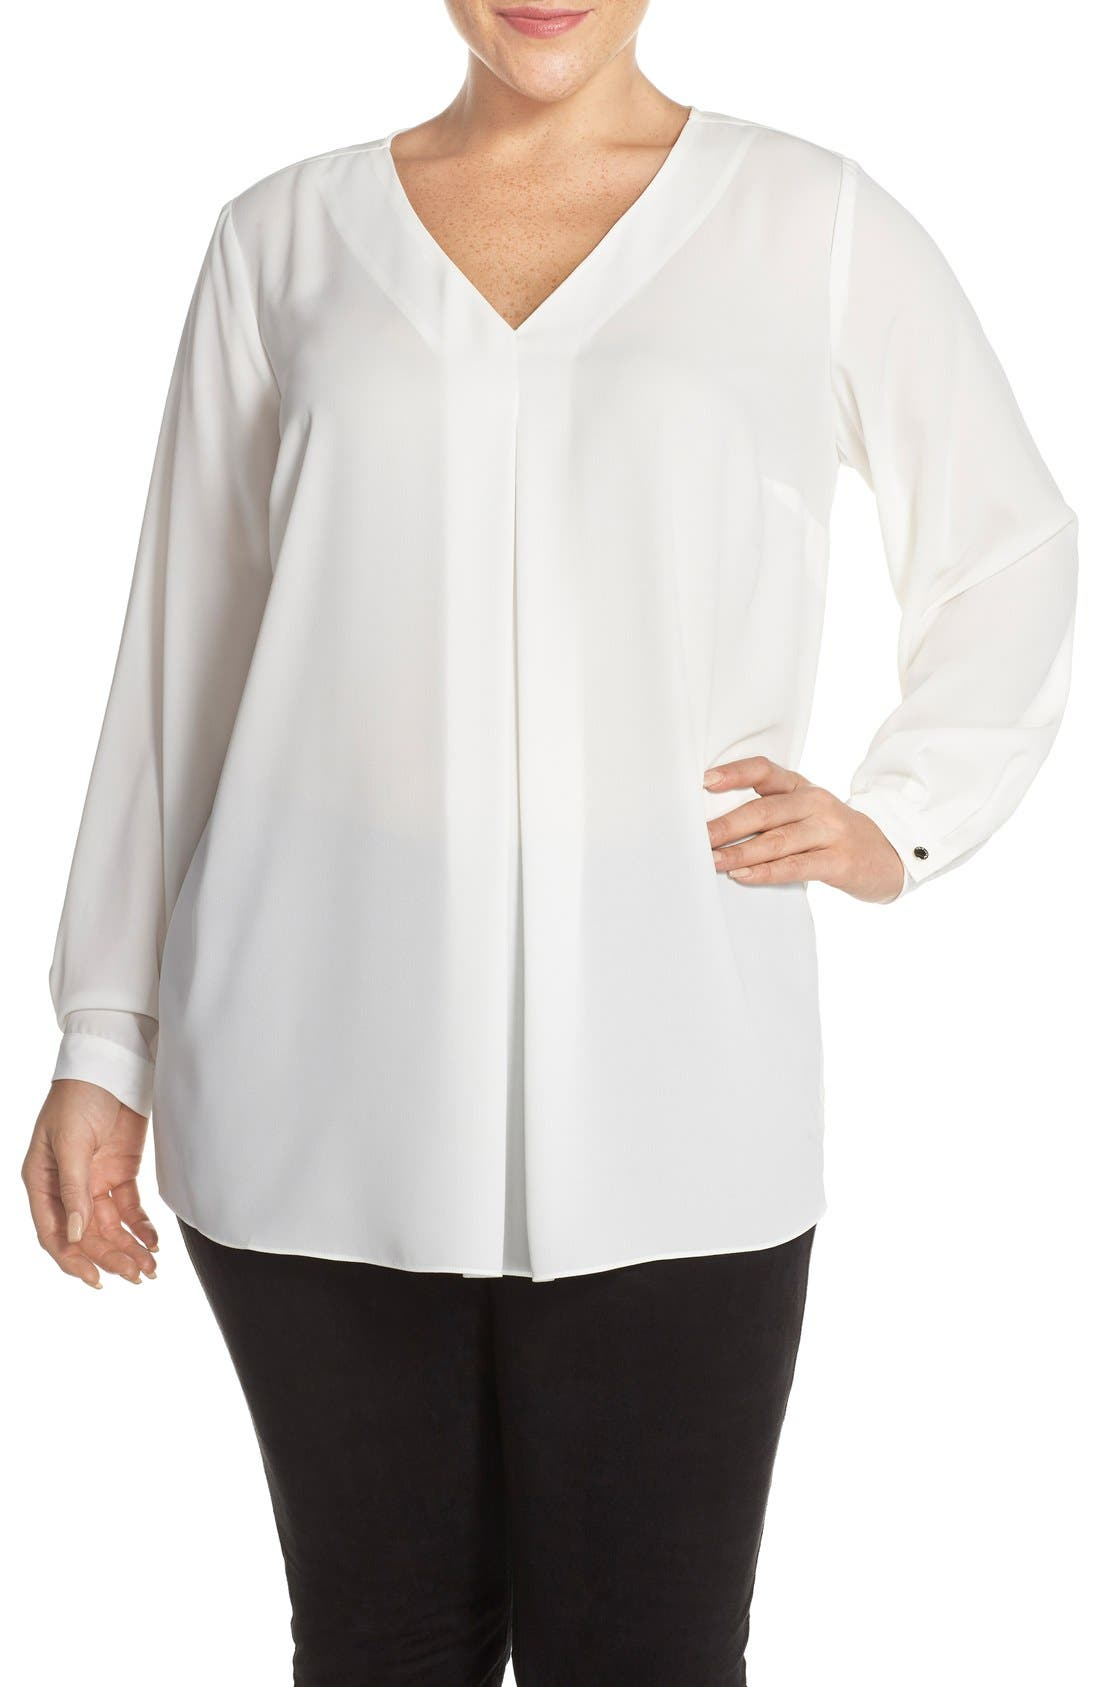 Alternate Image 1 Selected - Vince Camuto Pleat Front V-Neck Blouse (Plus Size)